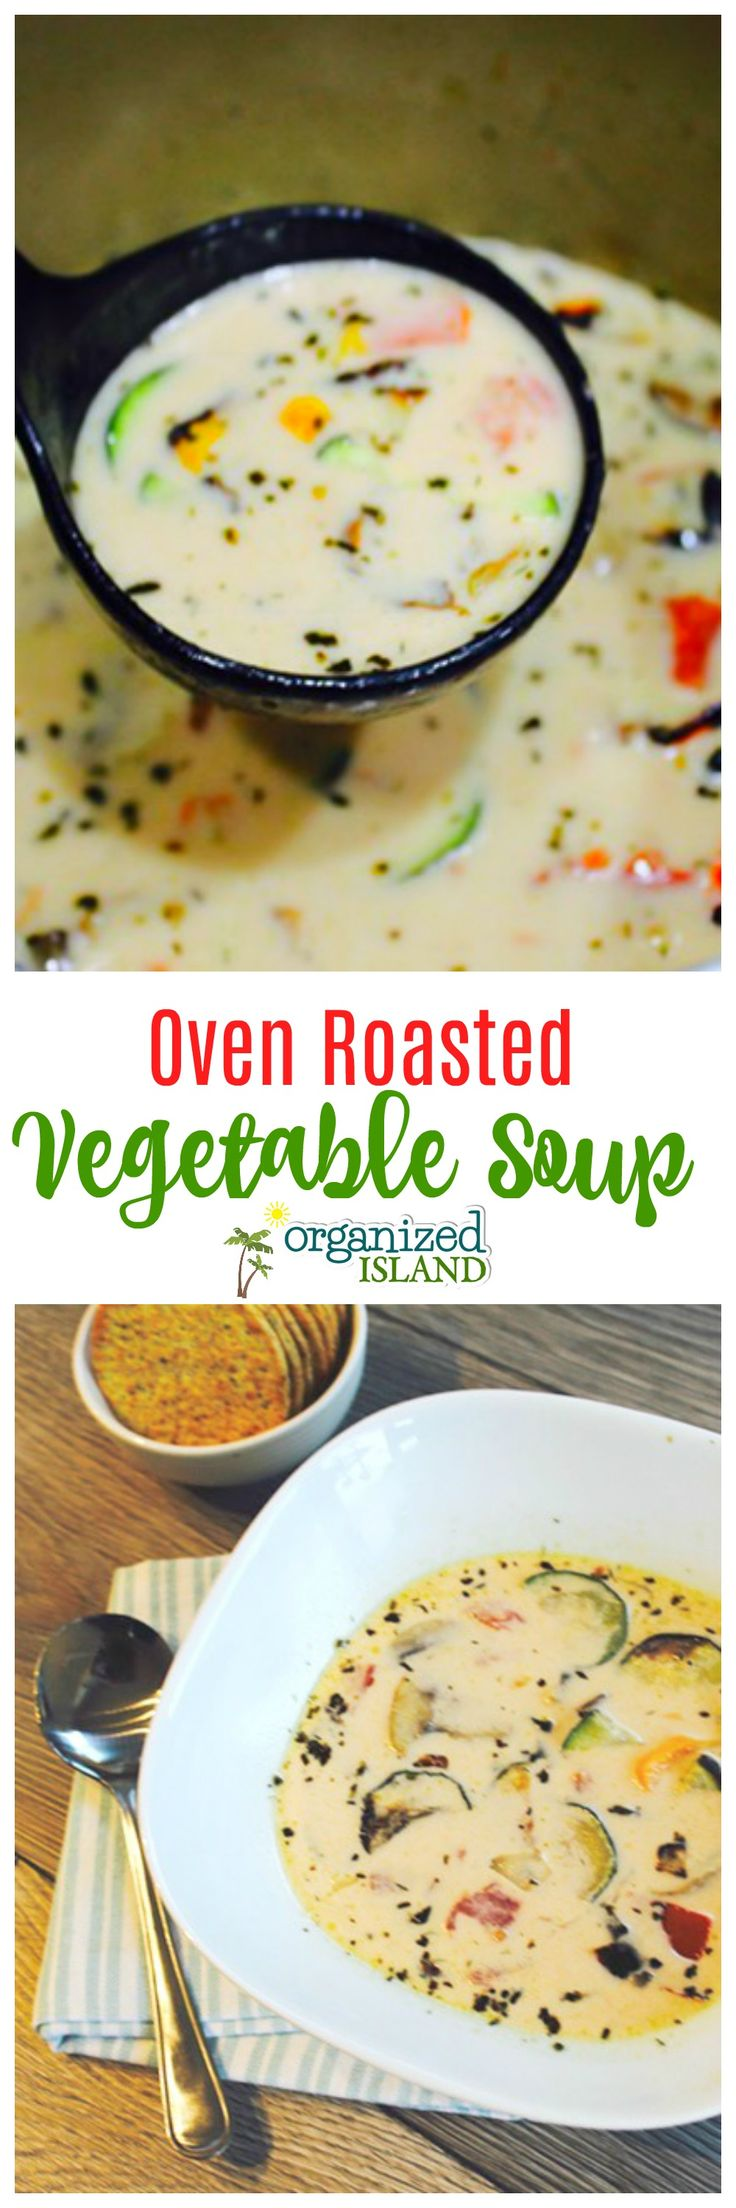 Easy Roasted Vegetable Soup Recipe via @OCRaquel